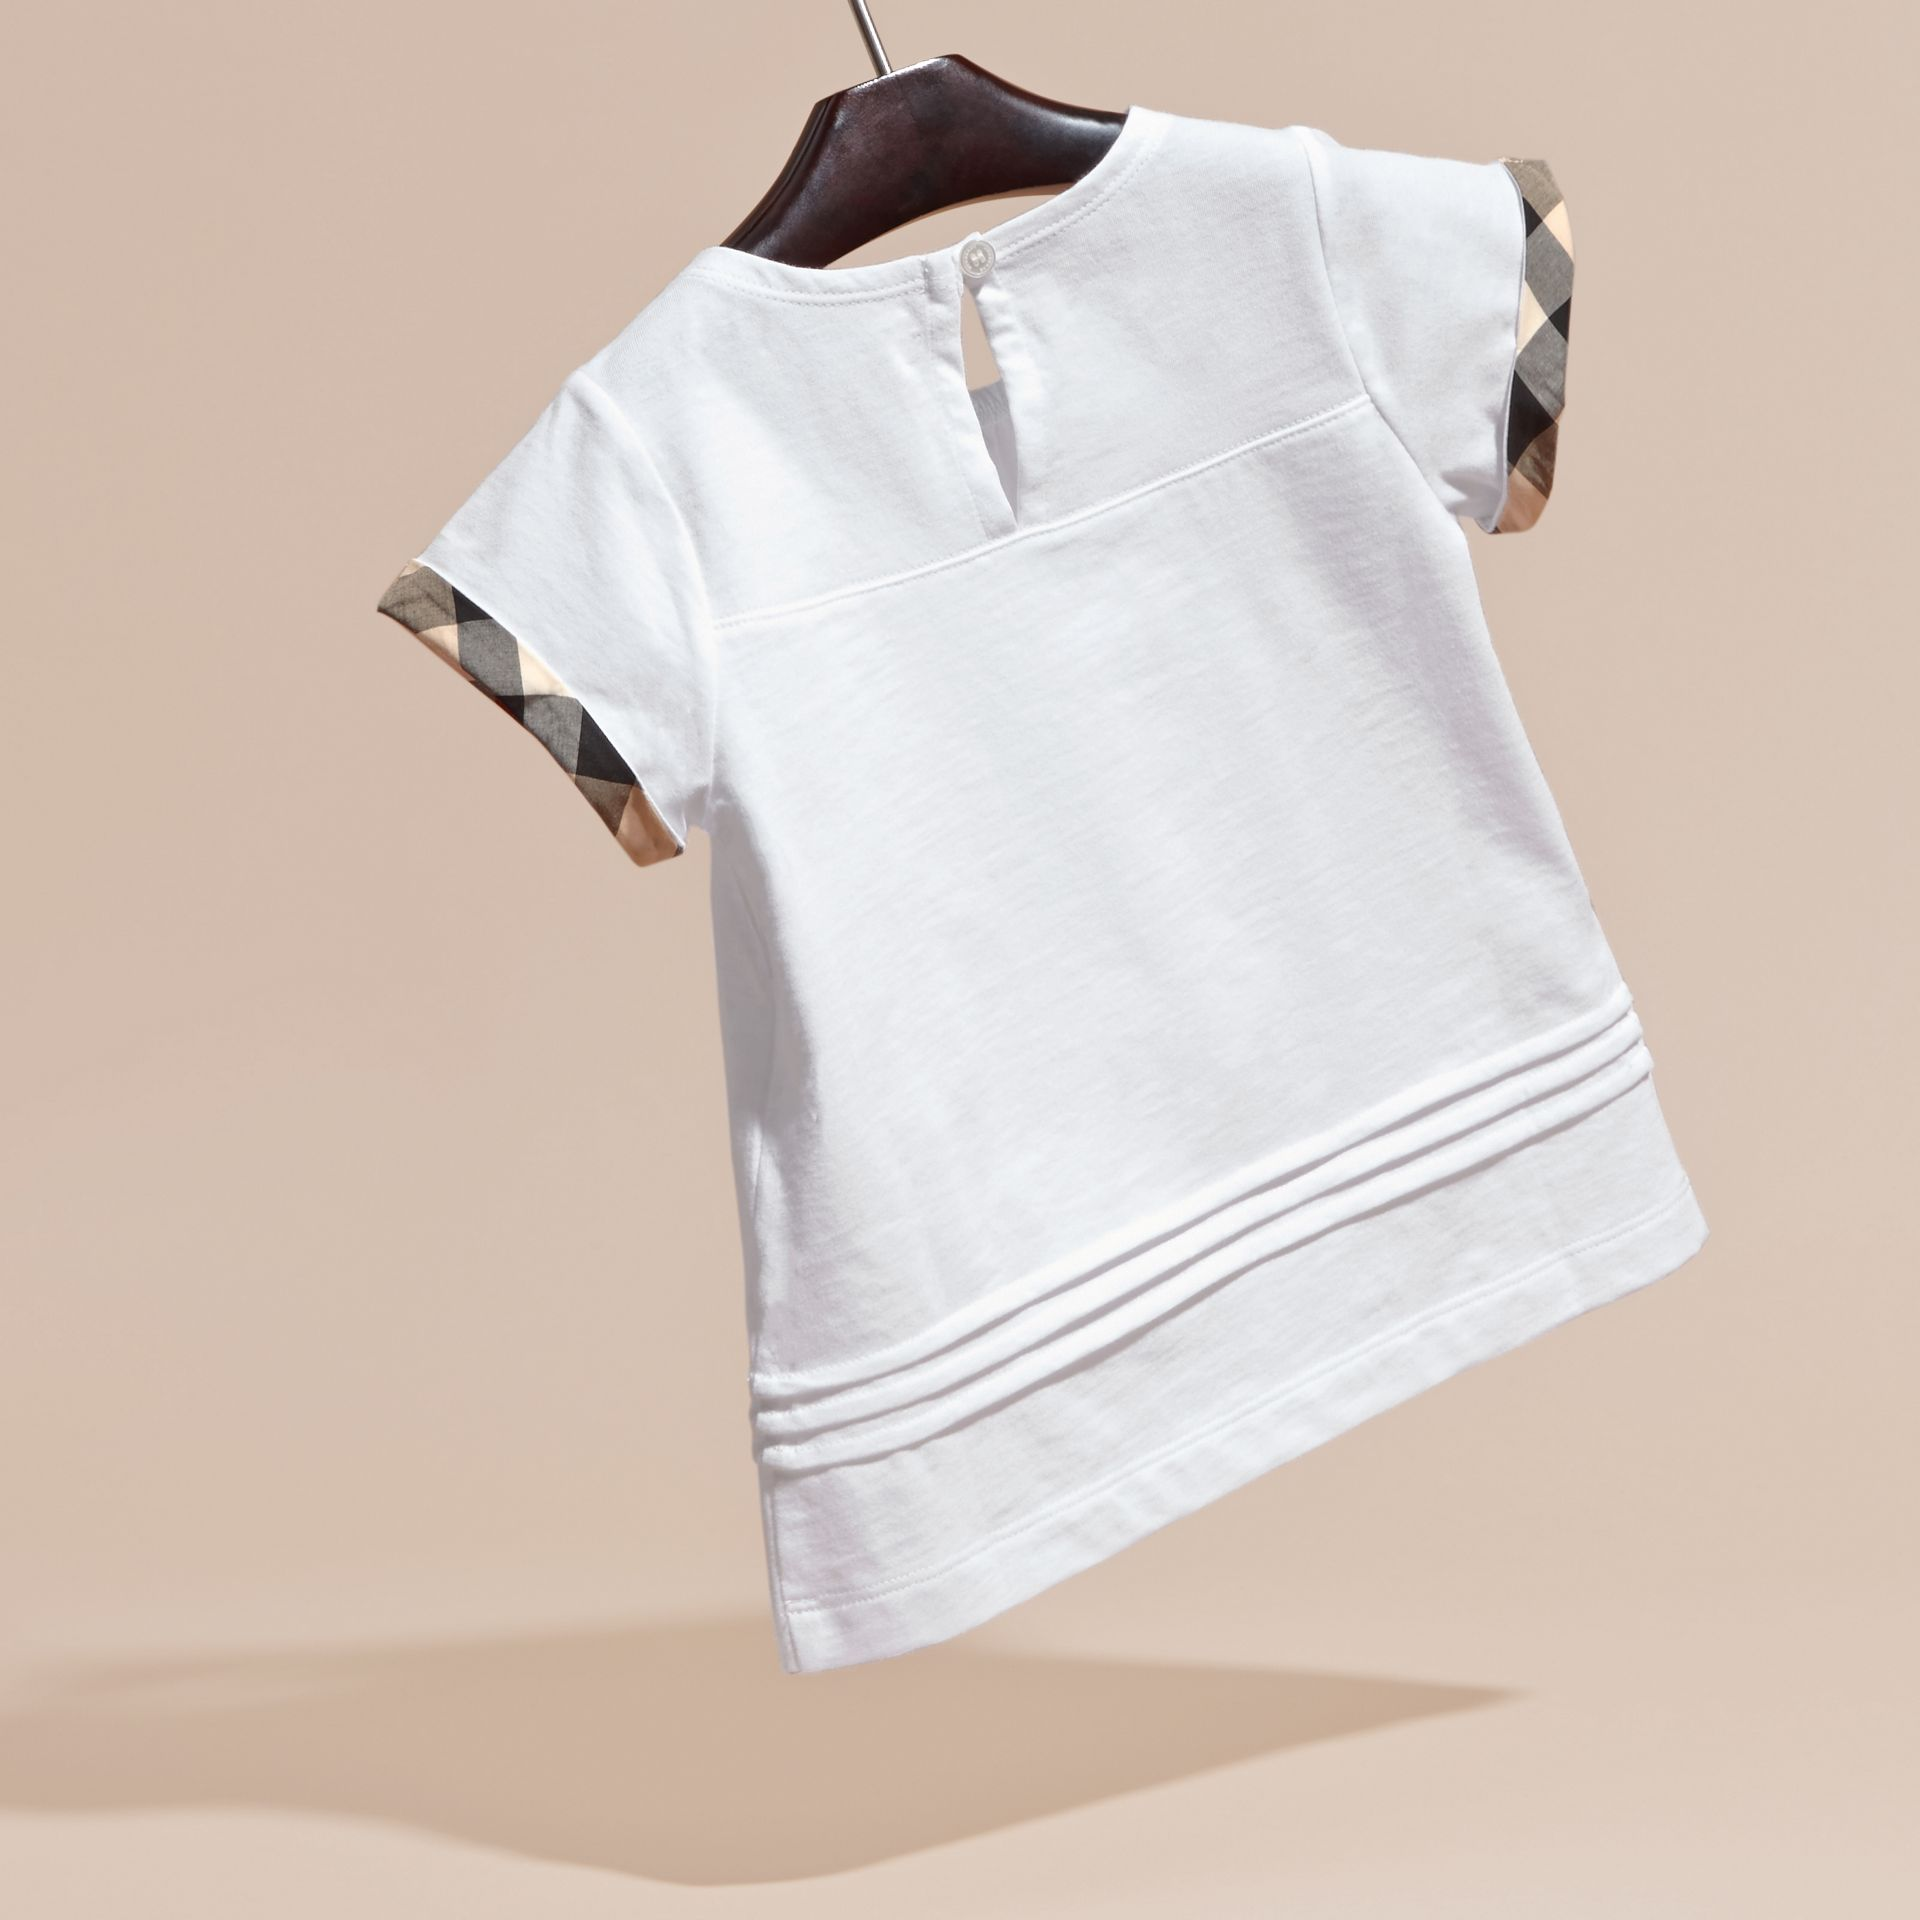 White Pleat and Check Detail Cotton T-shirt White - gallery image 4